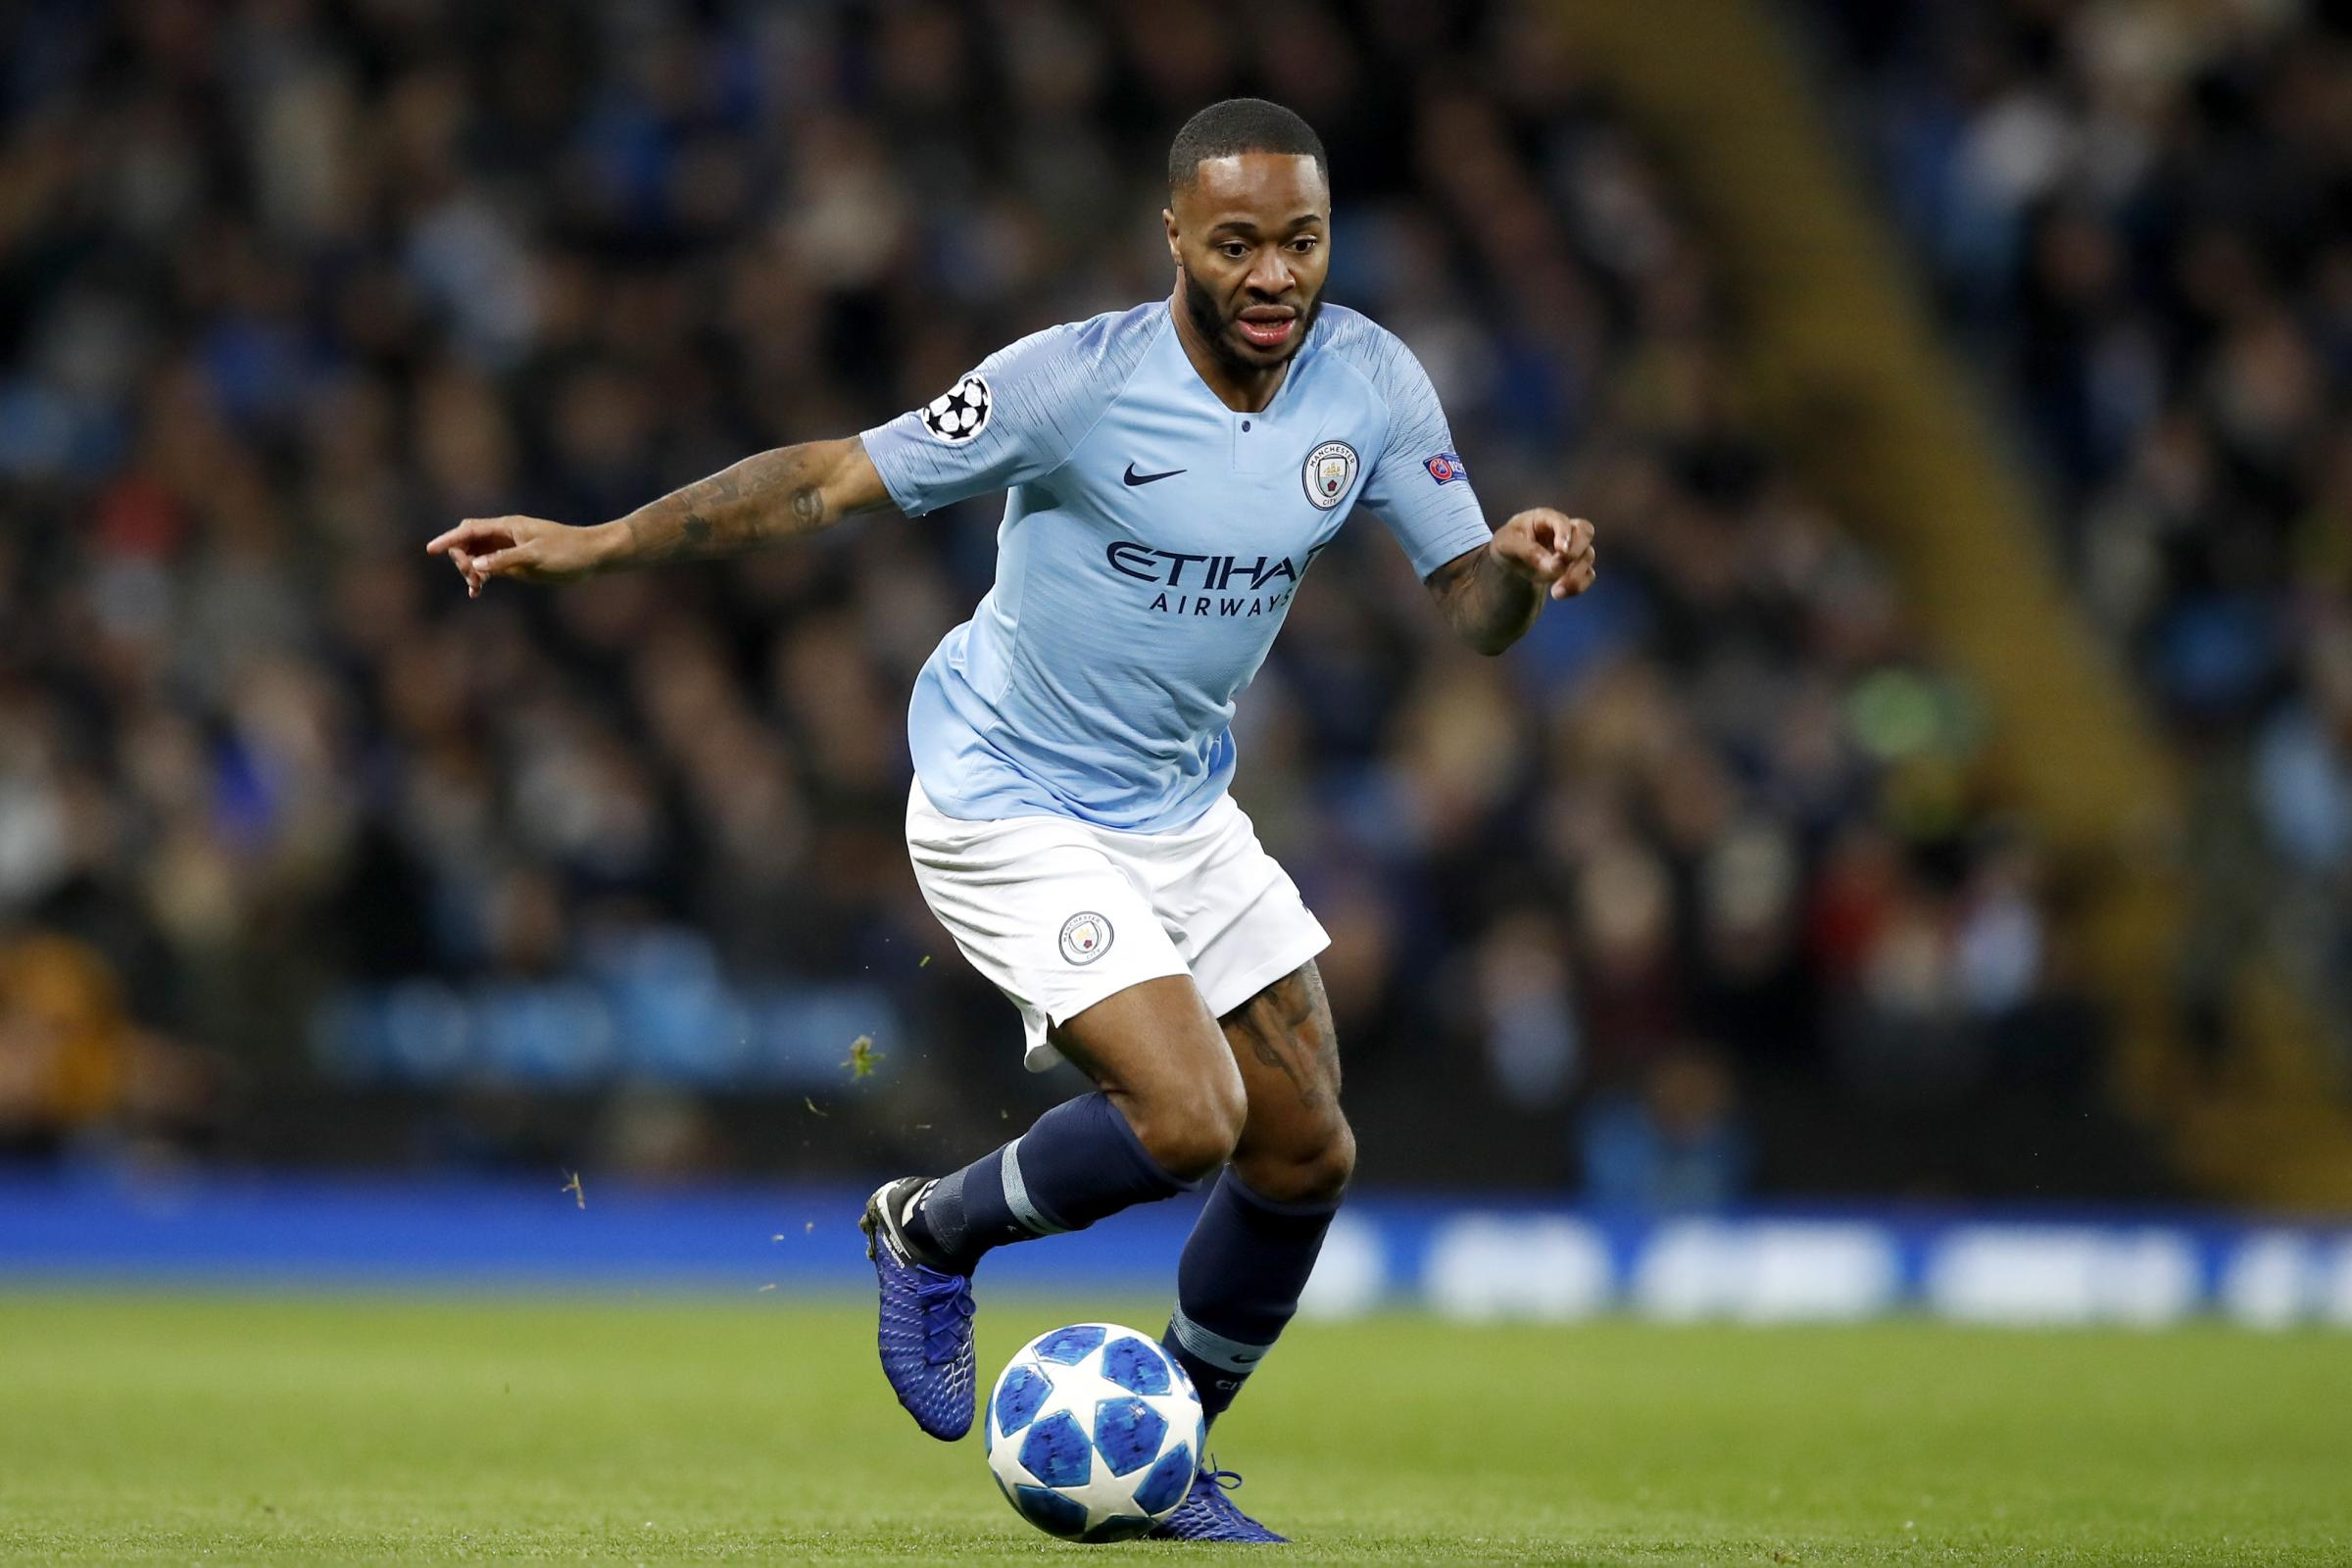 Manchester City's Raheem Sterling. (PA)